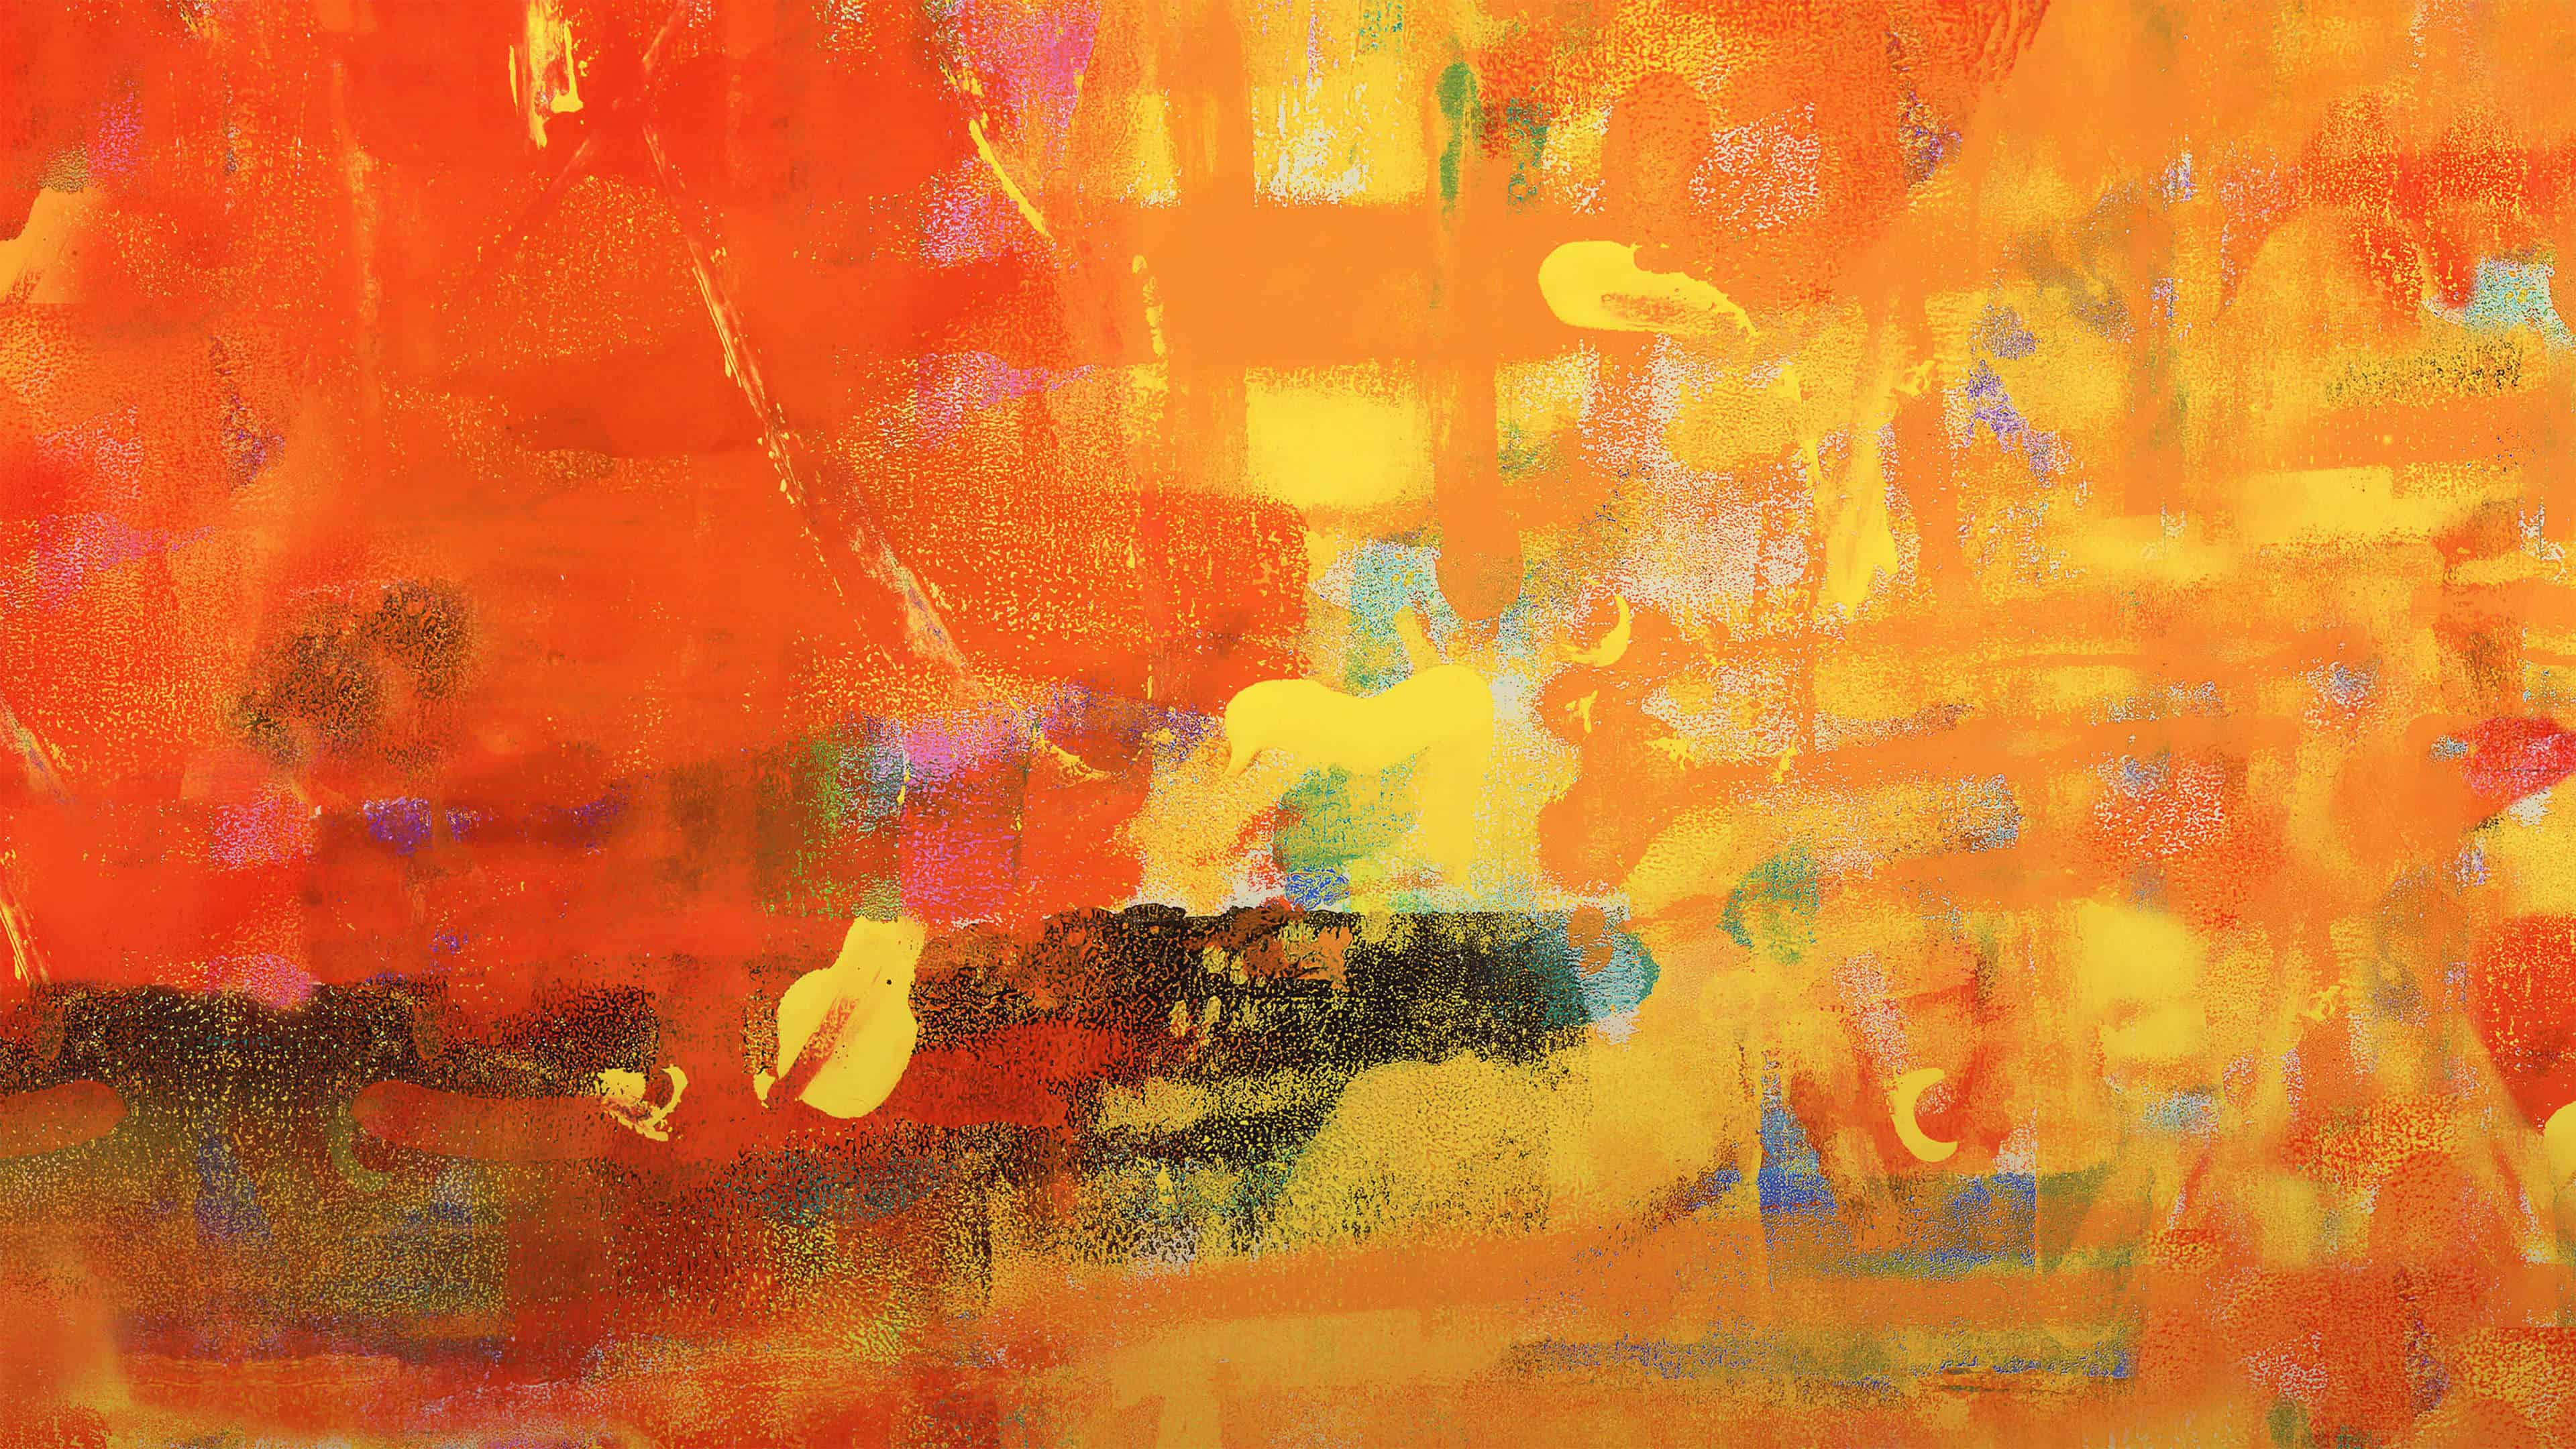 Abstract Painting Uhd 4k Wallpaper Abstract Painting